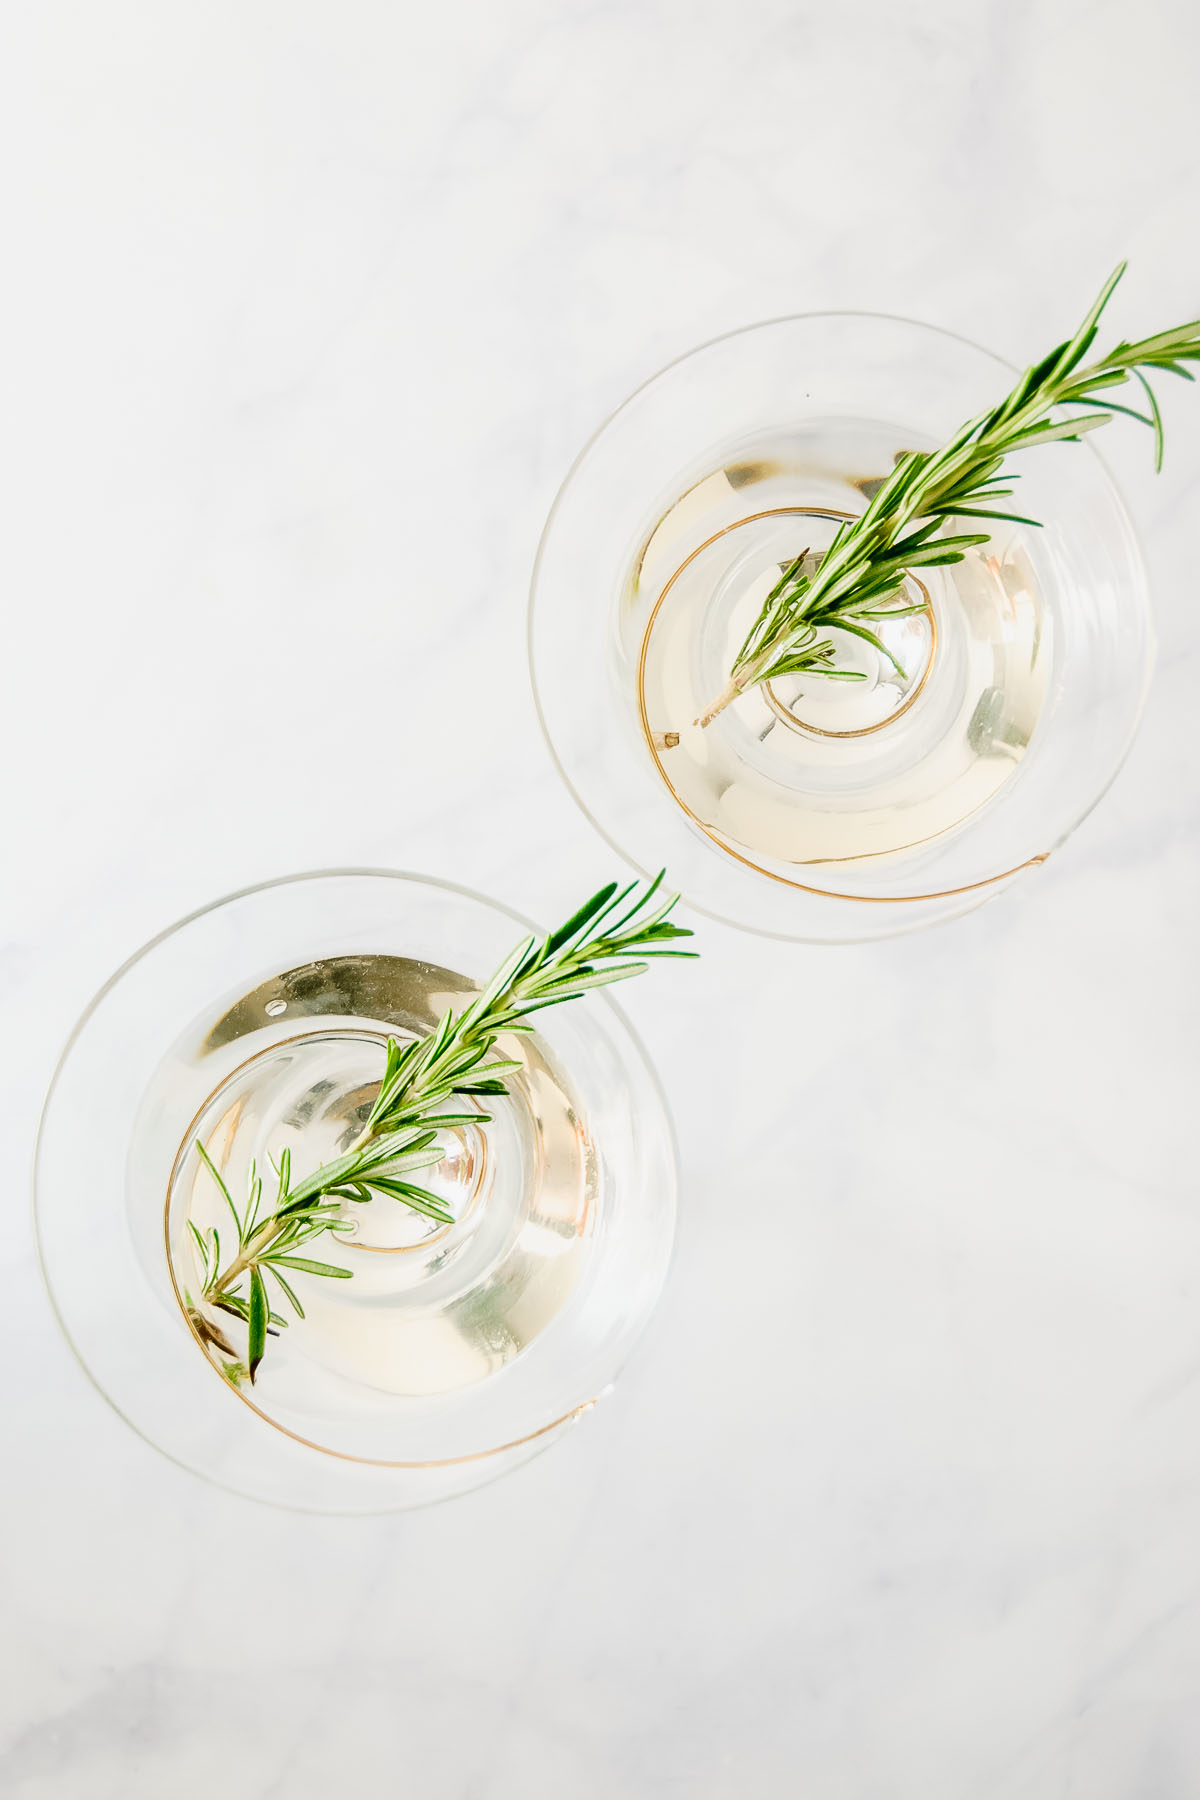 Simple and elegant, an O'Christmas Tree Martini will become your go-to holiday gin martini. PS. it's flavored with rosemary! - thebeaderchef.com #gin #martini #christmas #holiday #cocktail #mocktail #rosemary